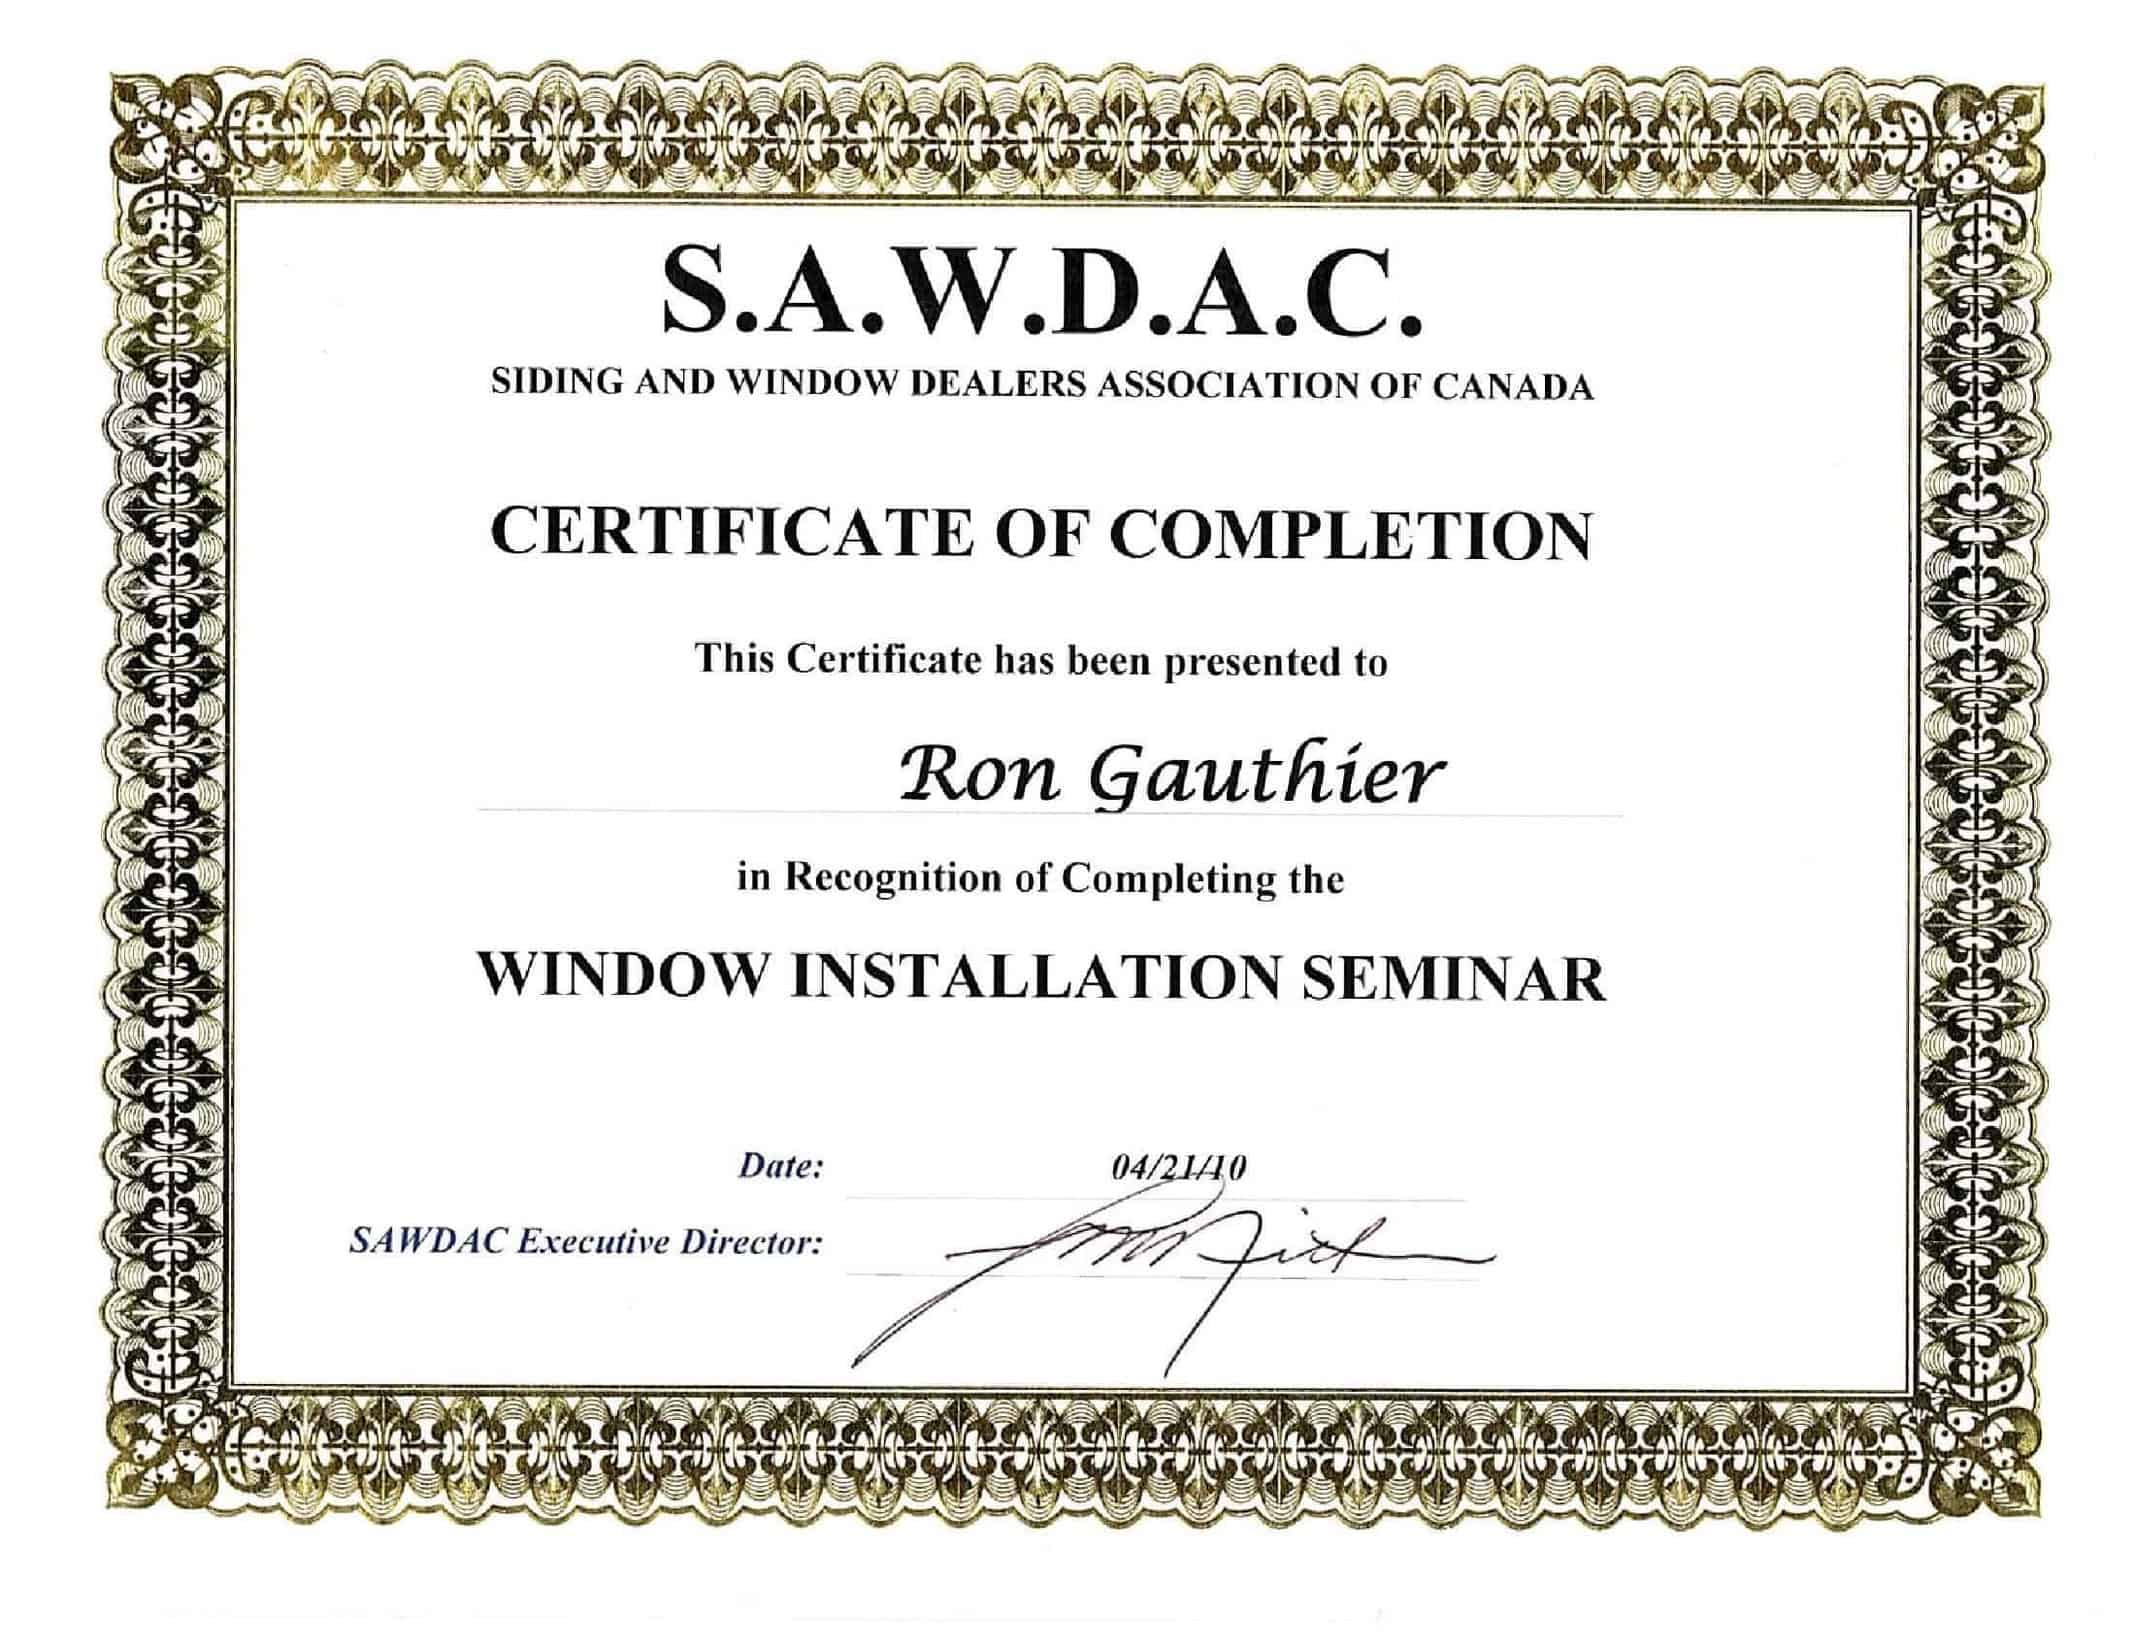 SAWDAC Window Installation Seminar Certificate - Gauthier Roofing and Siding